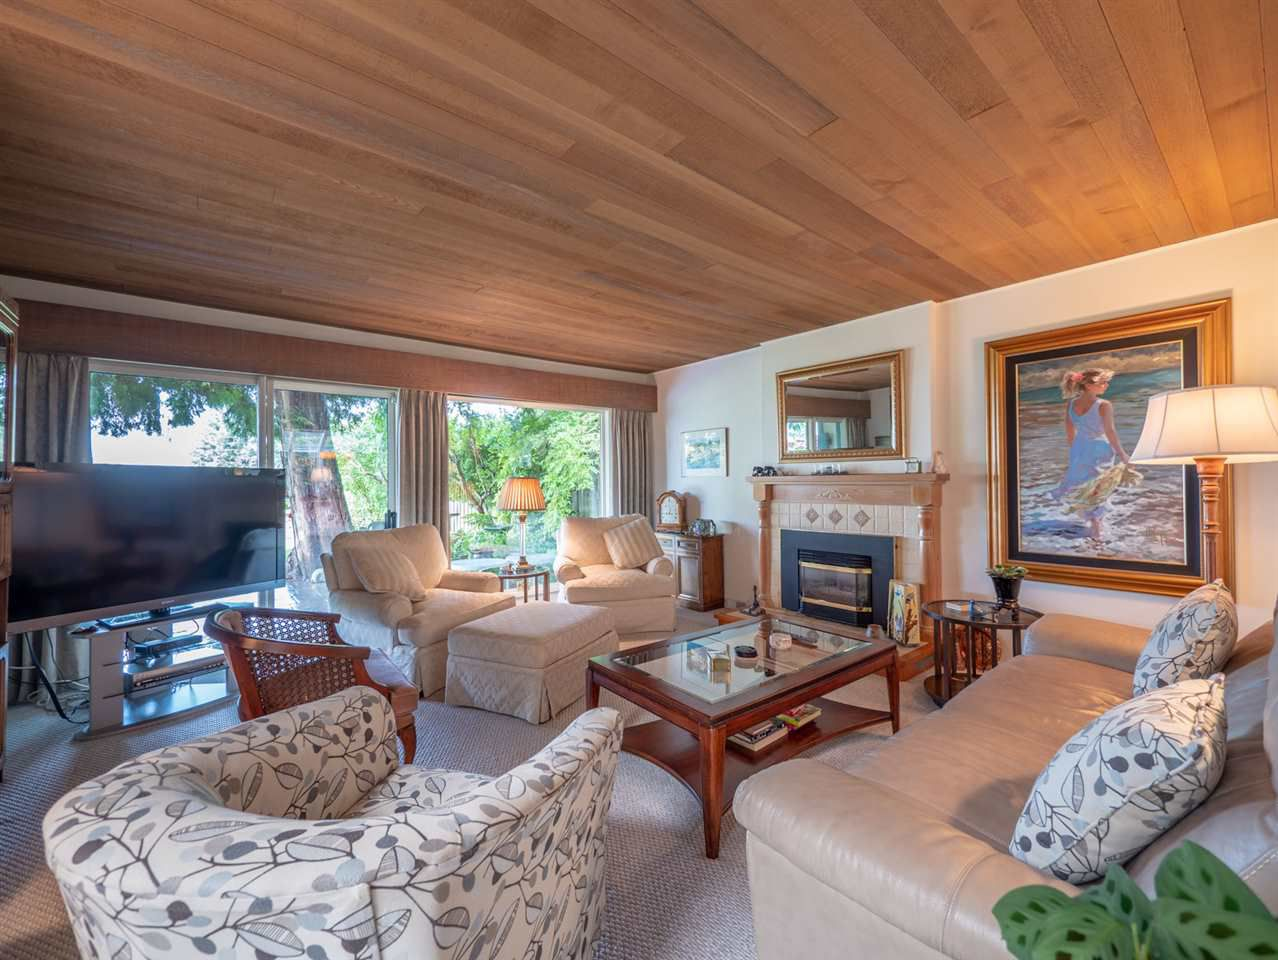 Main Photo: 5254 YACHT Road in Sechelt: Sechelt District House for sale (Sunshine Coast)  : MLS®# R2306959